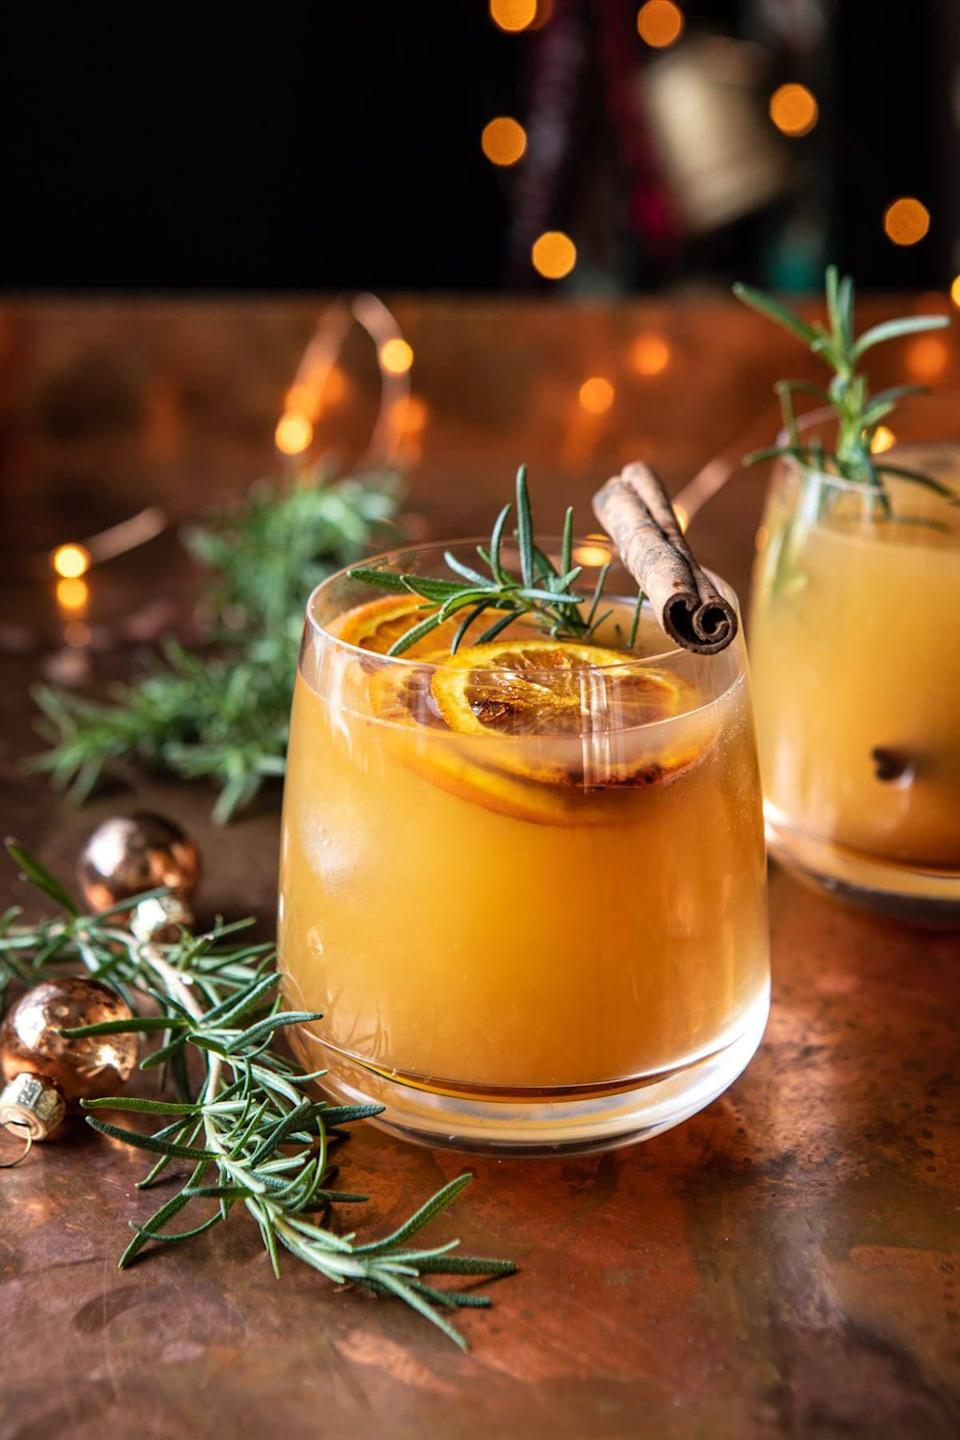 """<p>New Mexico is also on the old fashioned train, and we don't blame 'em! During this time, there's nothing more soothing than sipping on a rich bourbon libation. This interesting twist incorporates maple syrup, fresh rosemary, and cinnamon sticks, so you know it's about to be good.</p> <p><strong>Get the recipe</strong>: <a href=""""https://www.popsugar.com/buy?url=https%3A%2F%2Fwww.halfbakedharvest.com%2Fcinnamon-bourbon-old-fashioned%2F&p_name=cinnamon%20bourbon%20old%20fashioned&retailer=halfbakedharvest.com&evar1=yum%3Aus&evar9=47471653&evar98=https%3A%2F%2Fwww.popsugar.com%2Ffood%2Fphoto-gallery%2F47471653%2Fimage%2F47474659%2FNew-Mexico-Old-Fashioned&list1=cocktails%2Cdrinks%2Calcohol%2Crecipes&prop13=api&pdata=1"""" class=""""link rapid-noclick-resp"""" rel=""""nofollow noopener"""" target=""""_blank"""" data-ylk=""""slk:cinnamon bourbon old fashioned"""">cinnamon bourbon old fashioned</a></p>"""